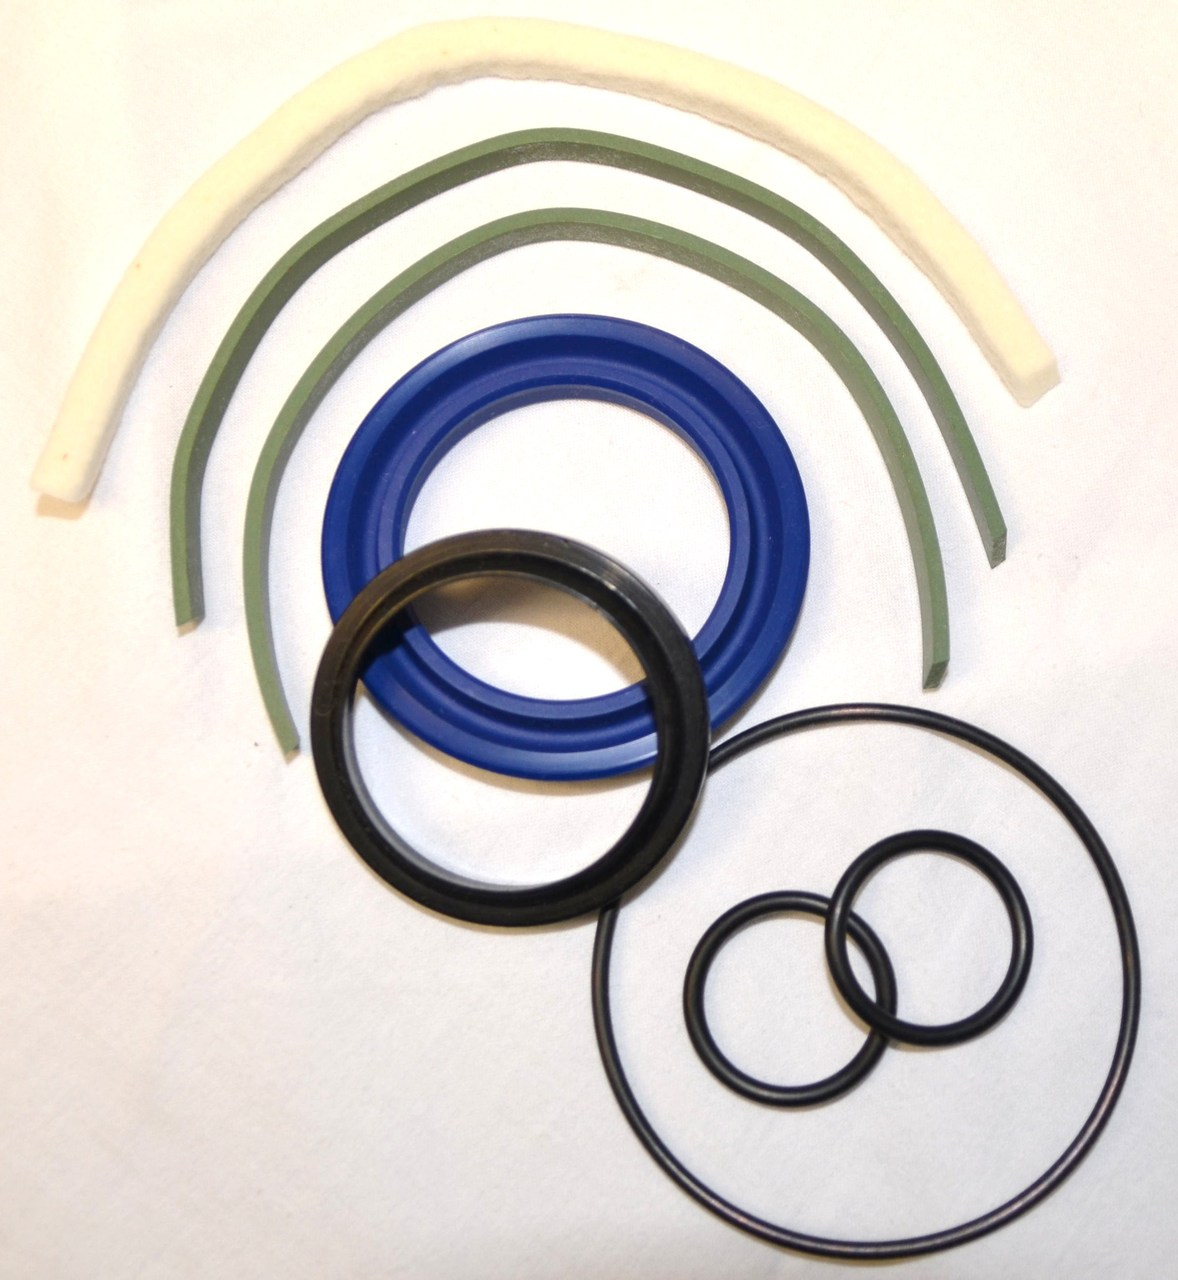 Direct-Lift Cylinder SEAL KIT for Lift Models PRO-6MR and GL-TL